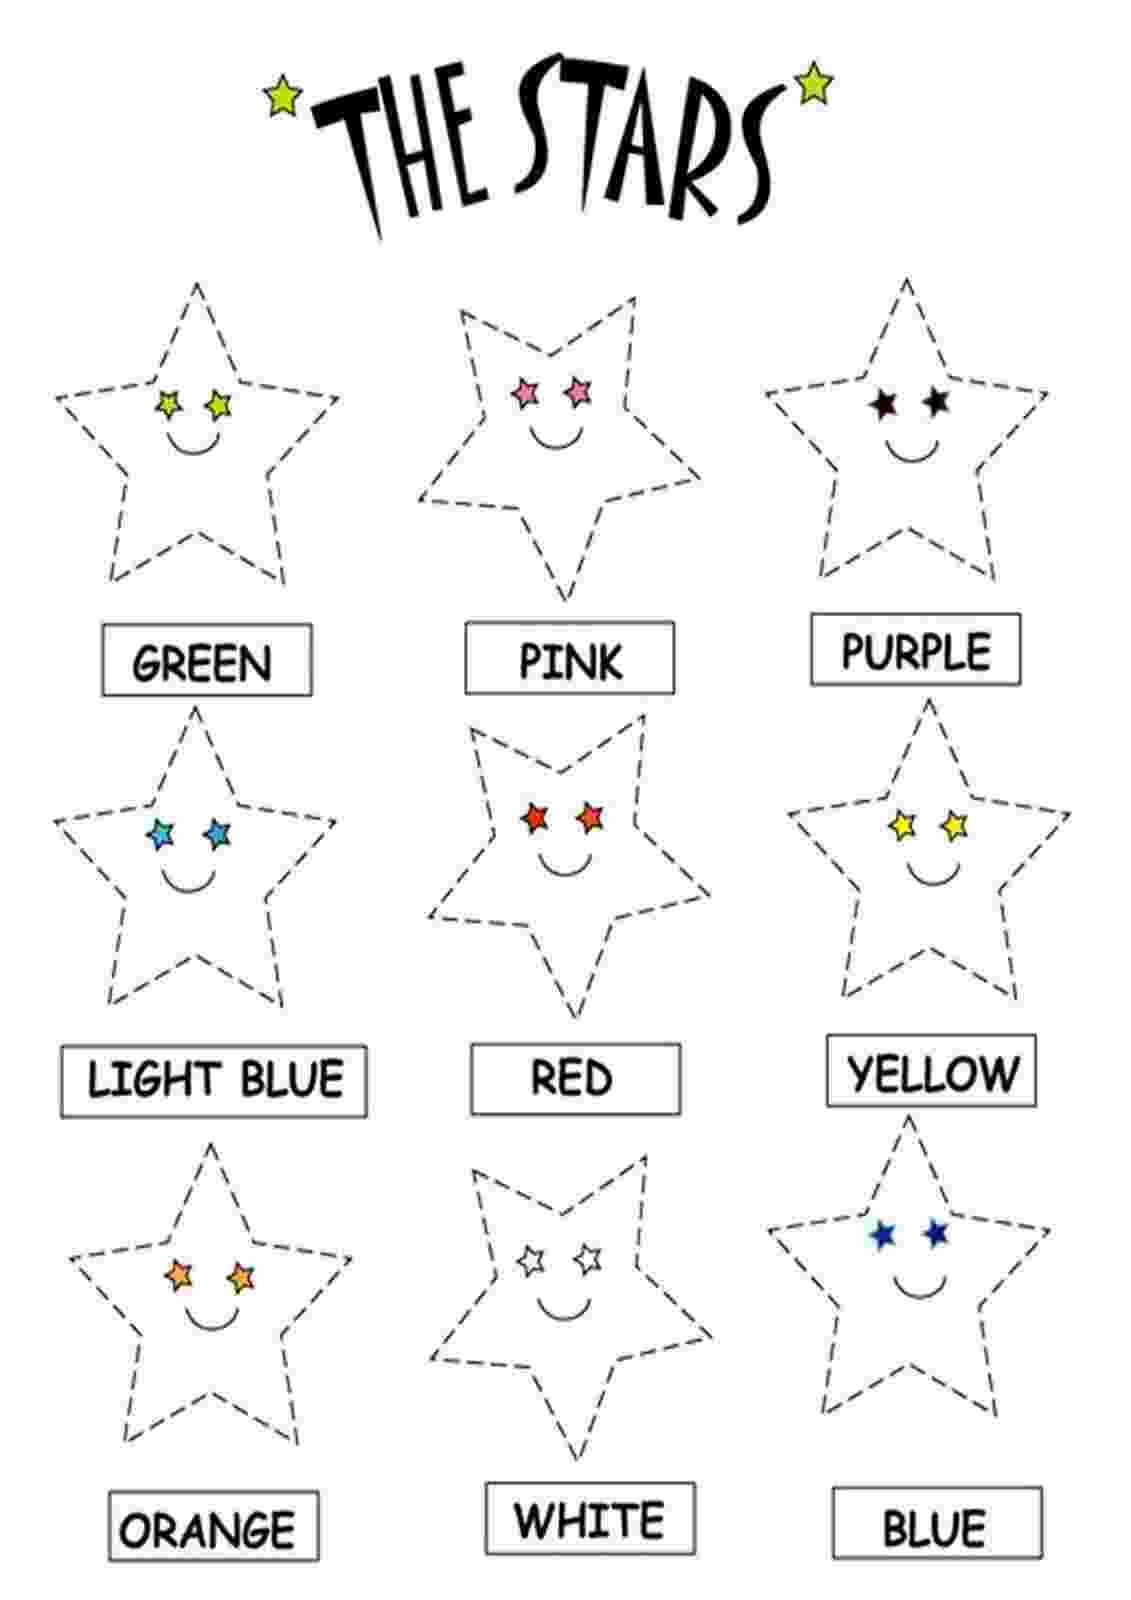 star coloring pages for preschoolers winged strawberry resources for parents and teachers star preschoolers for pages coloring